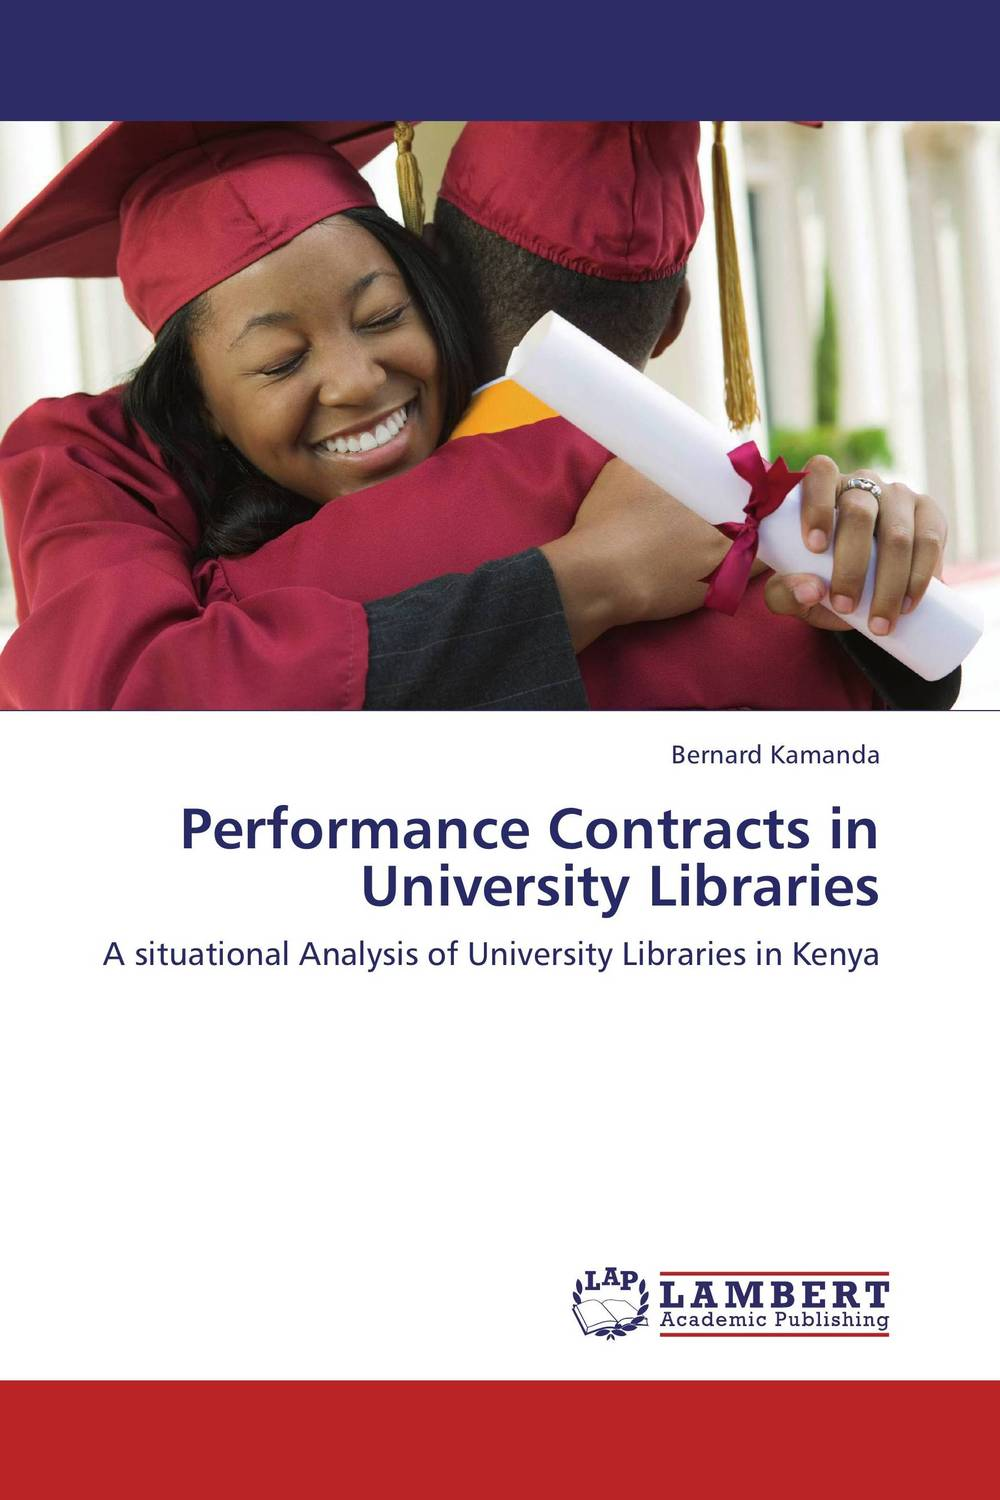 Performance Contracts in University Libraries